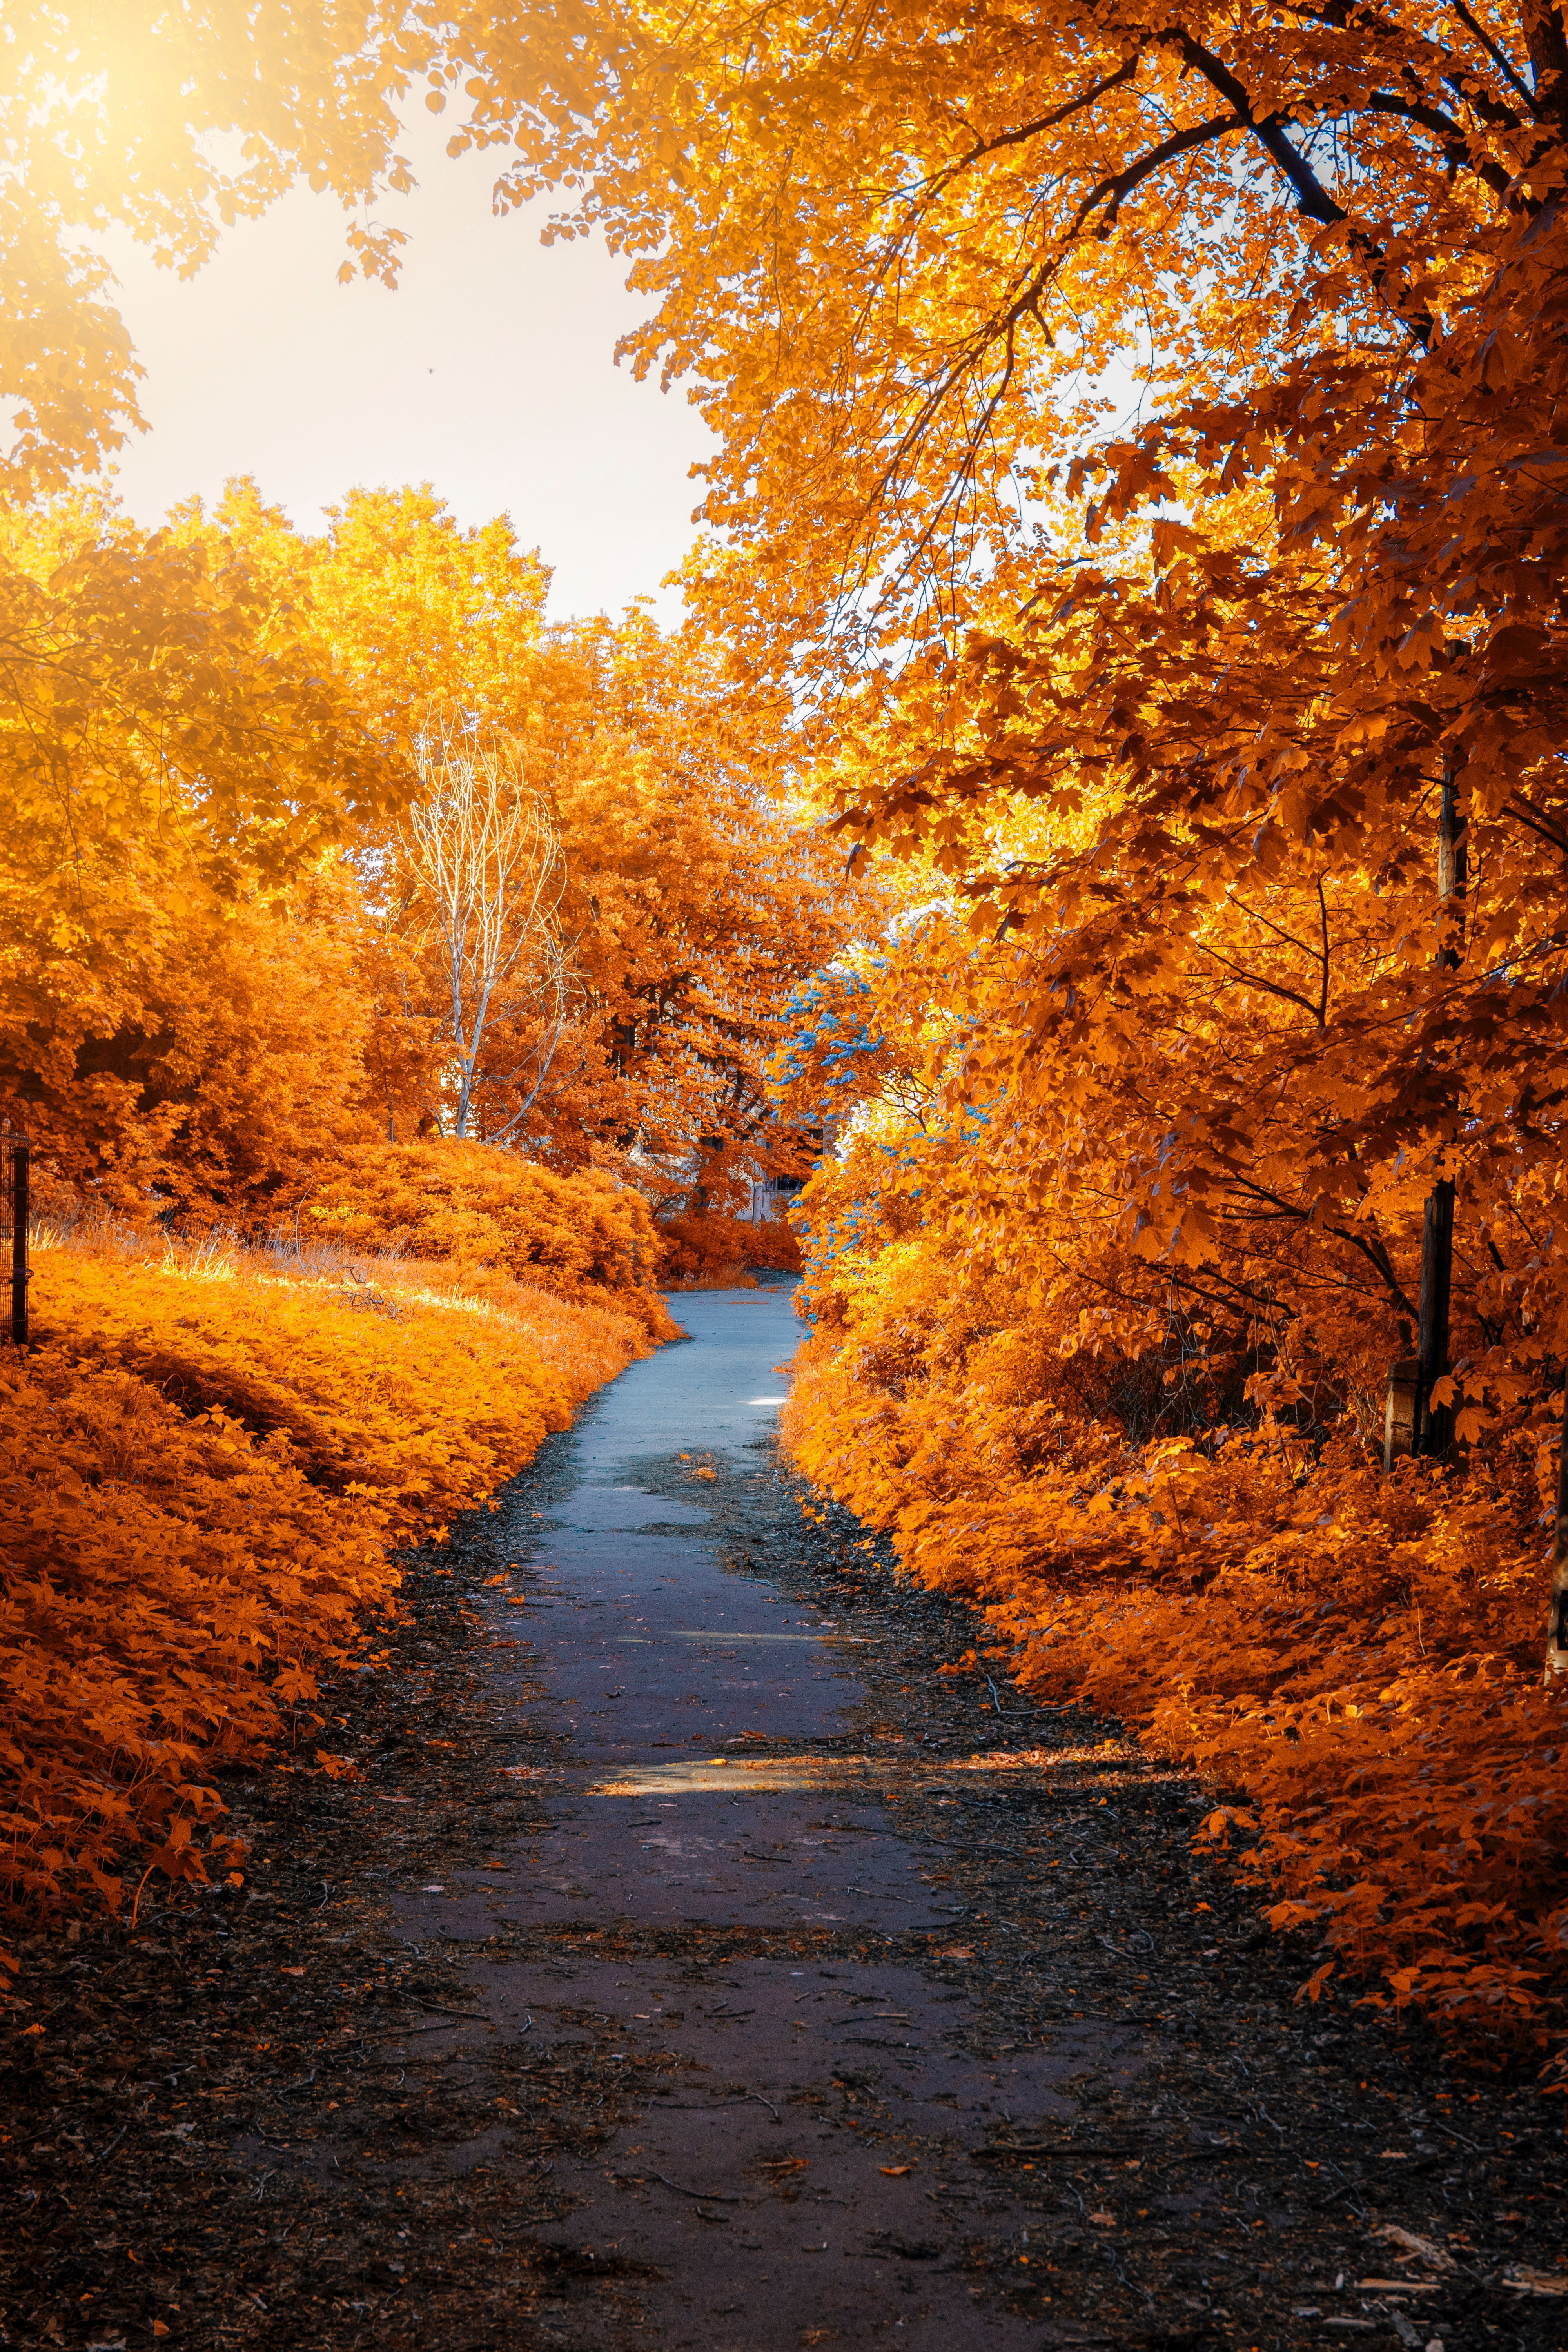 99893 download wallpaper Nature, Autumn, Path, Park, Foliage screensavers and pictures for free